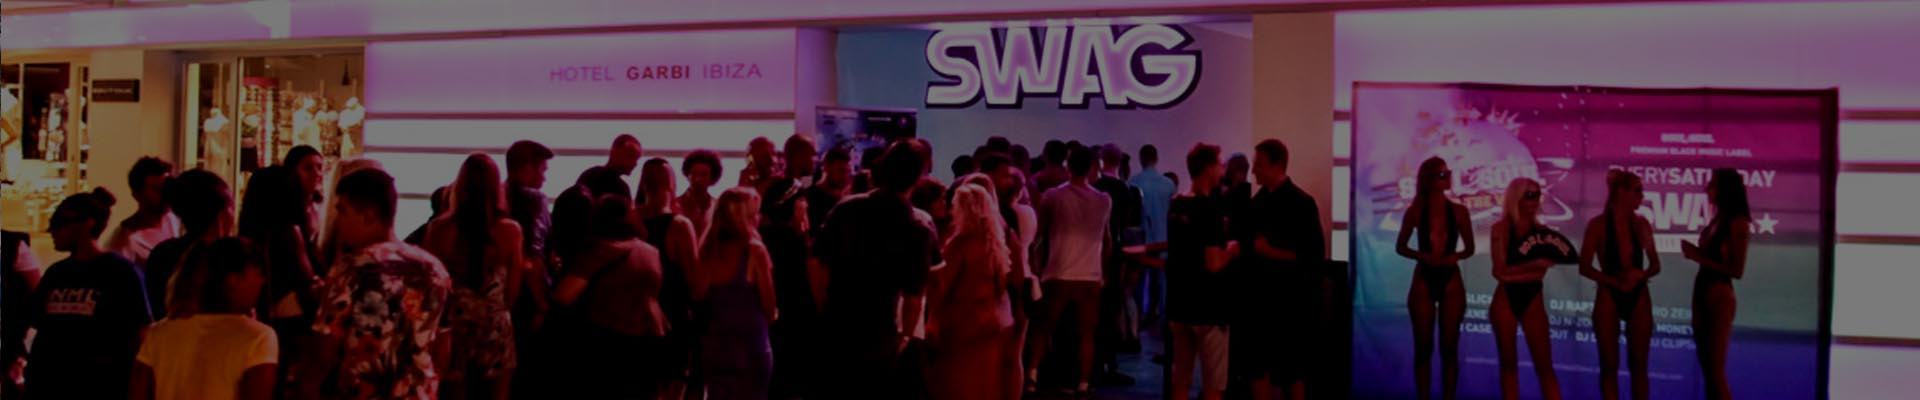 Swag – Urban Music Club